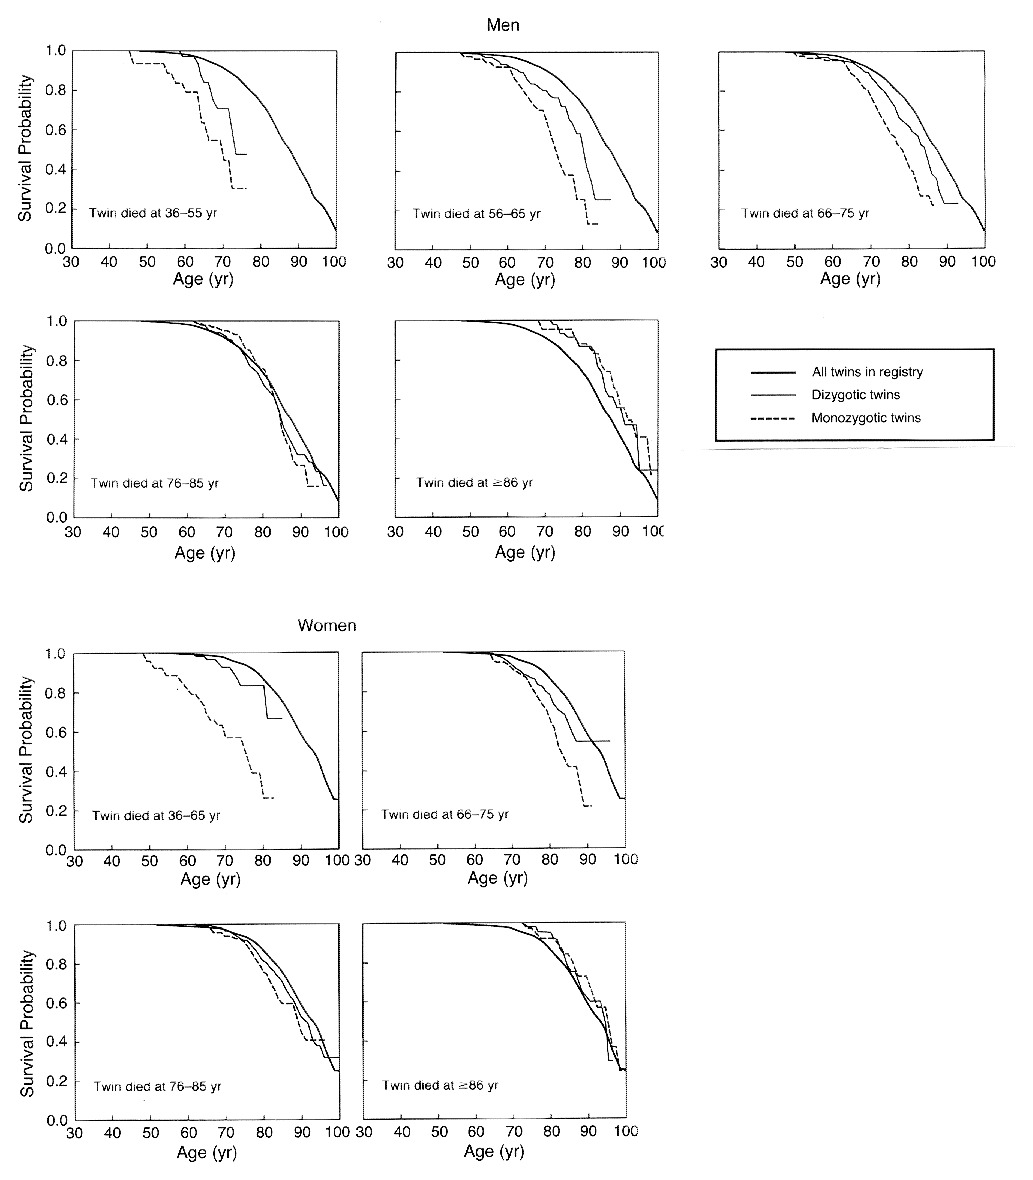 Genetic Susceptibility To Death From Coronary Heart Disease In A